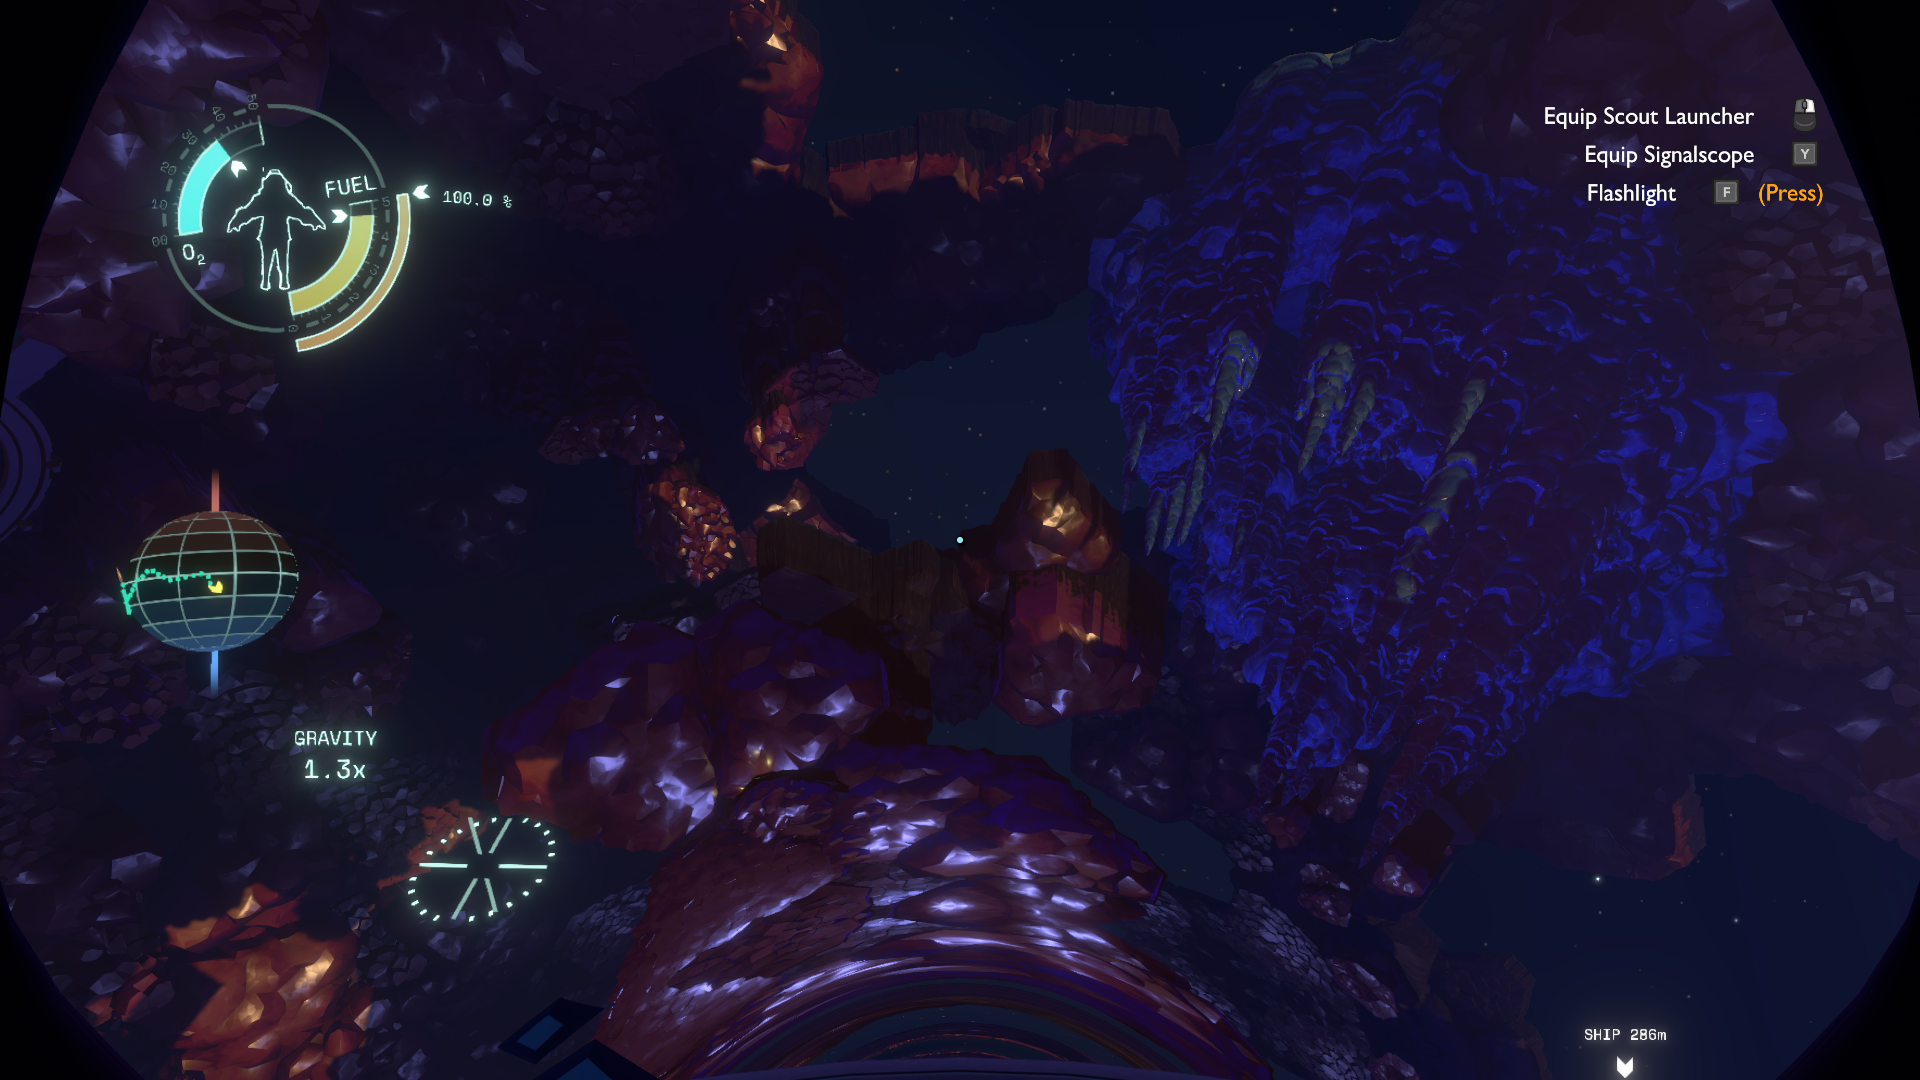 OuterWilds_19-09-23_10-43-01.png